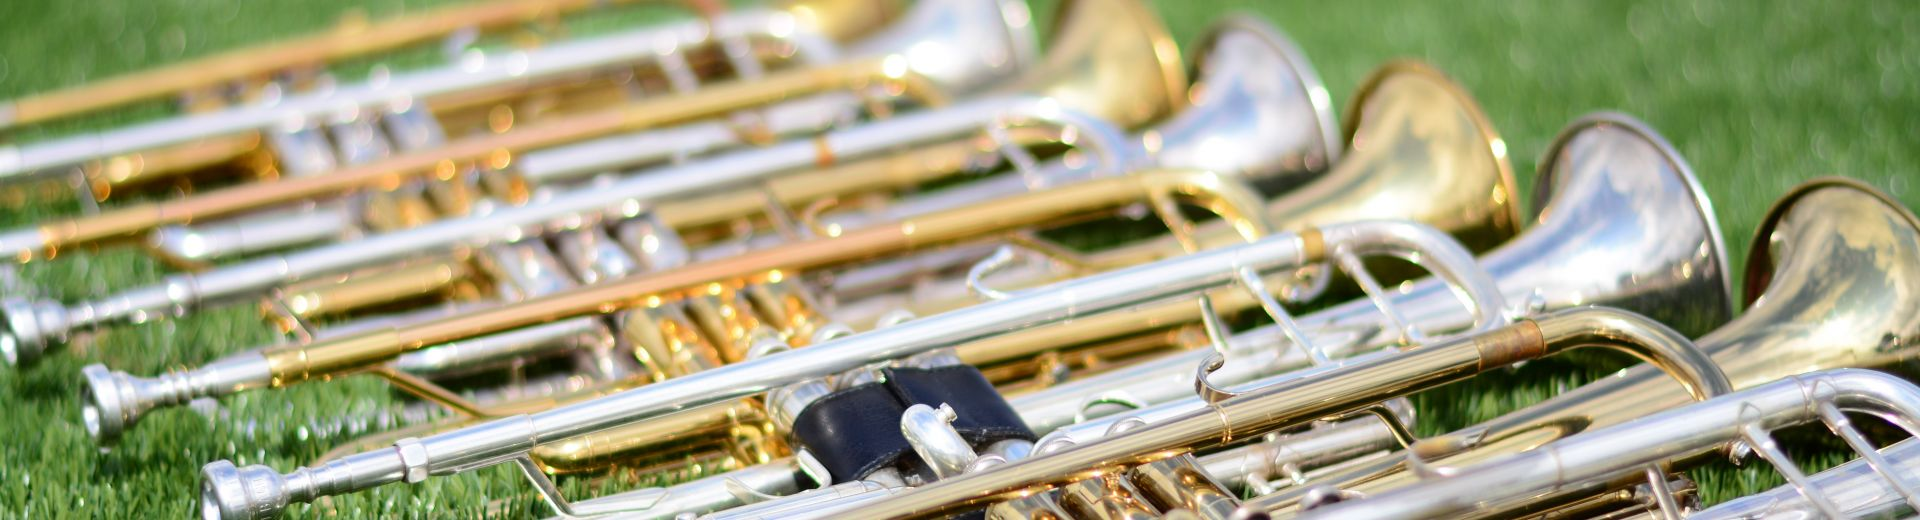 Trumpets lined up on grass